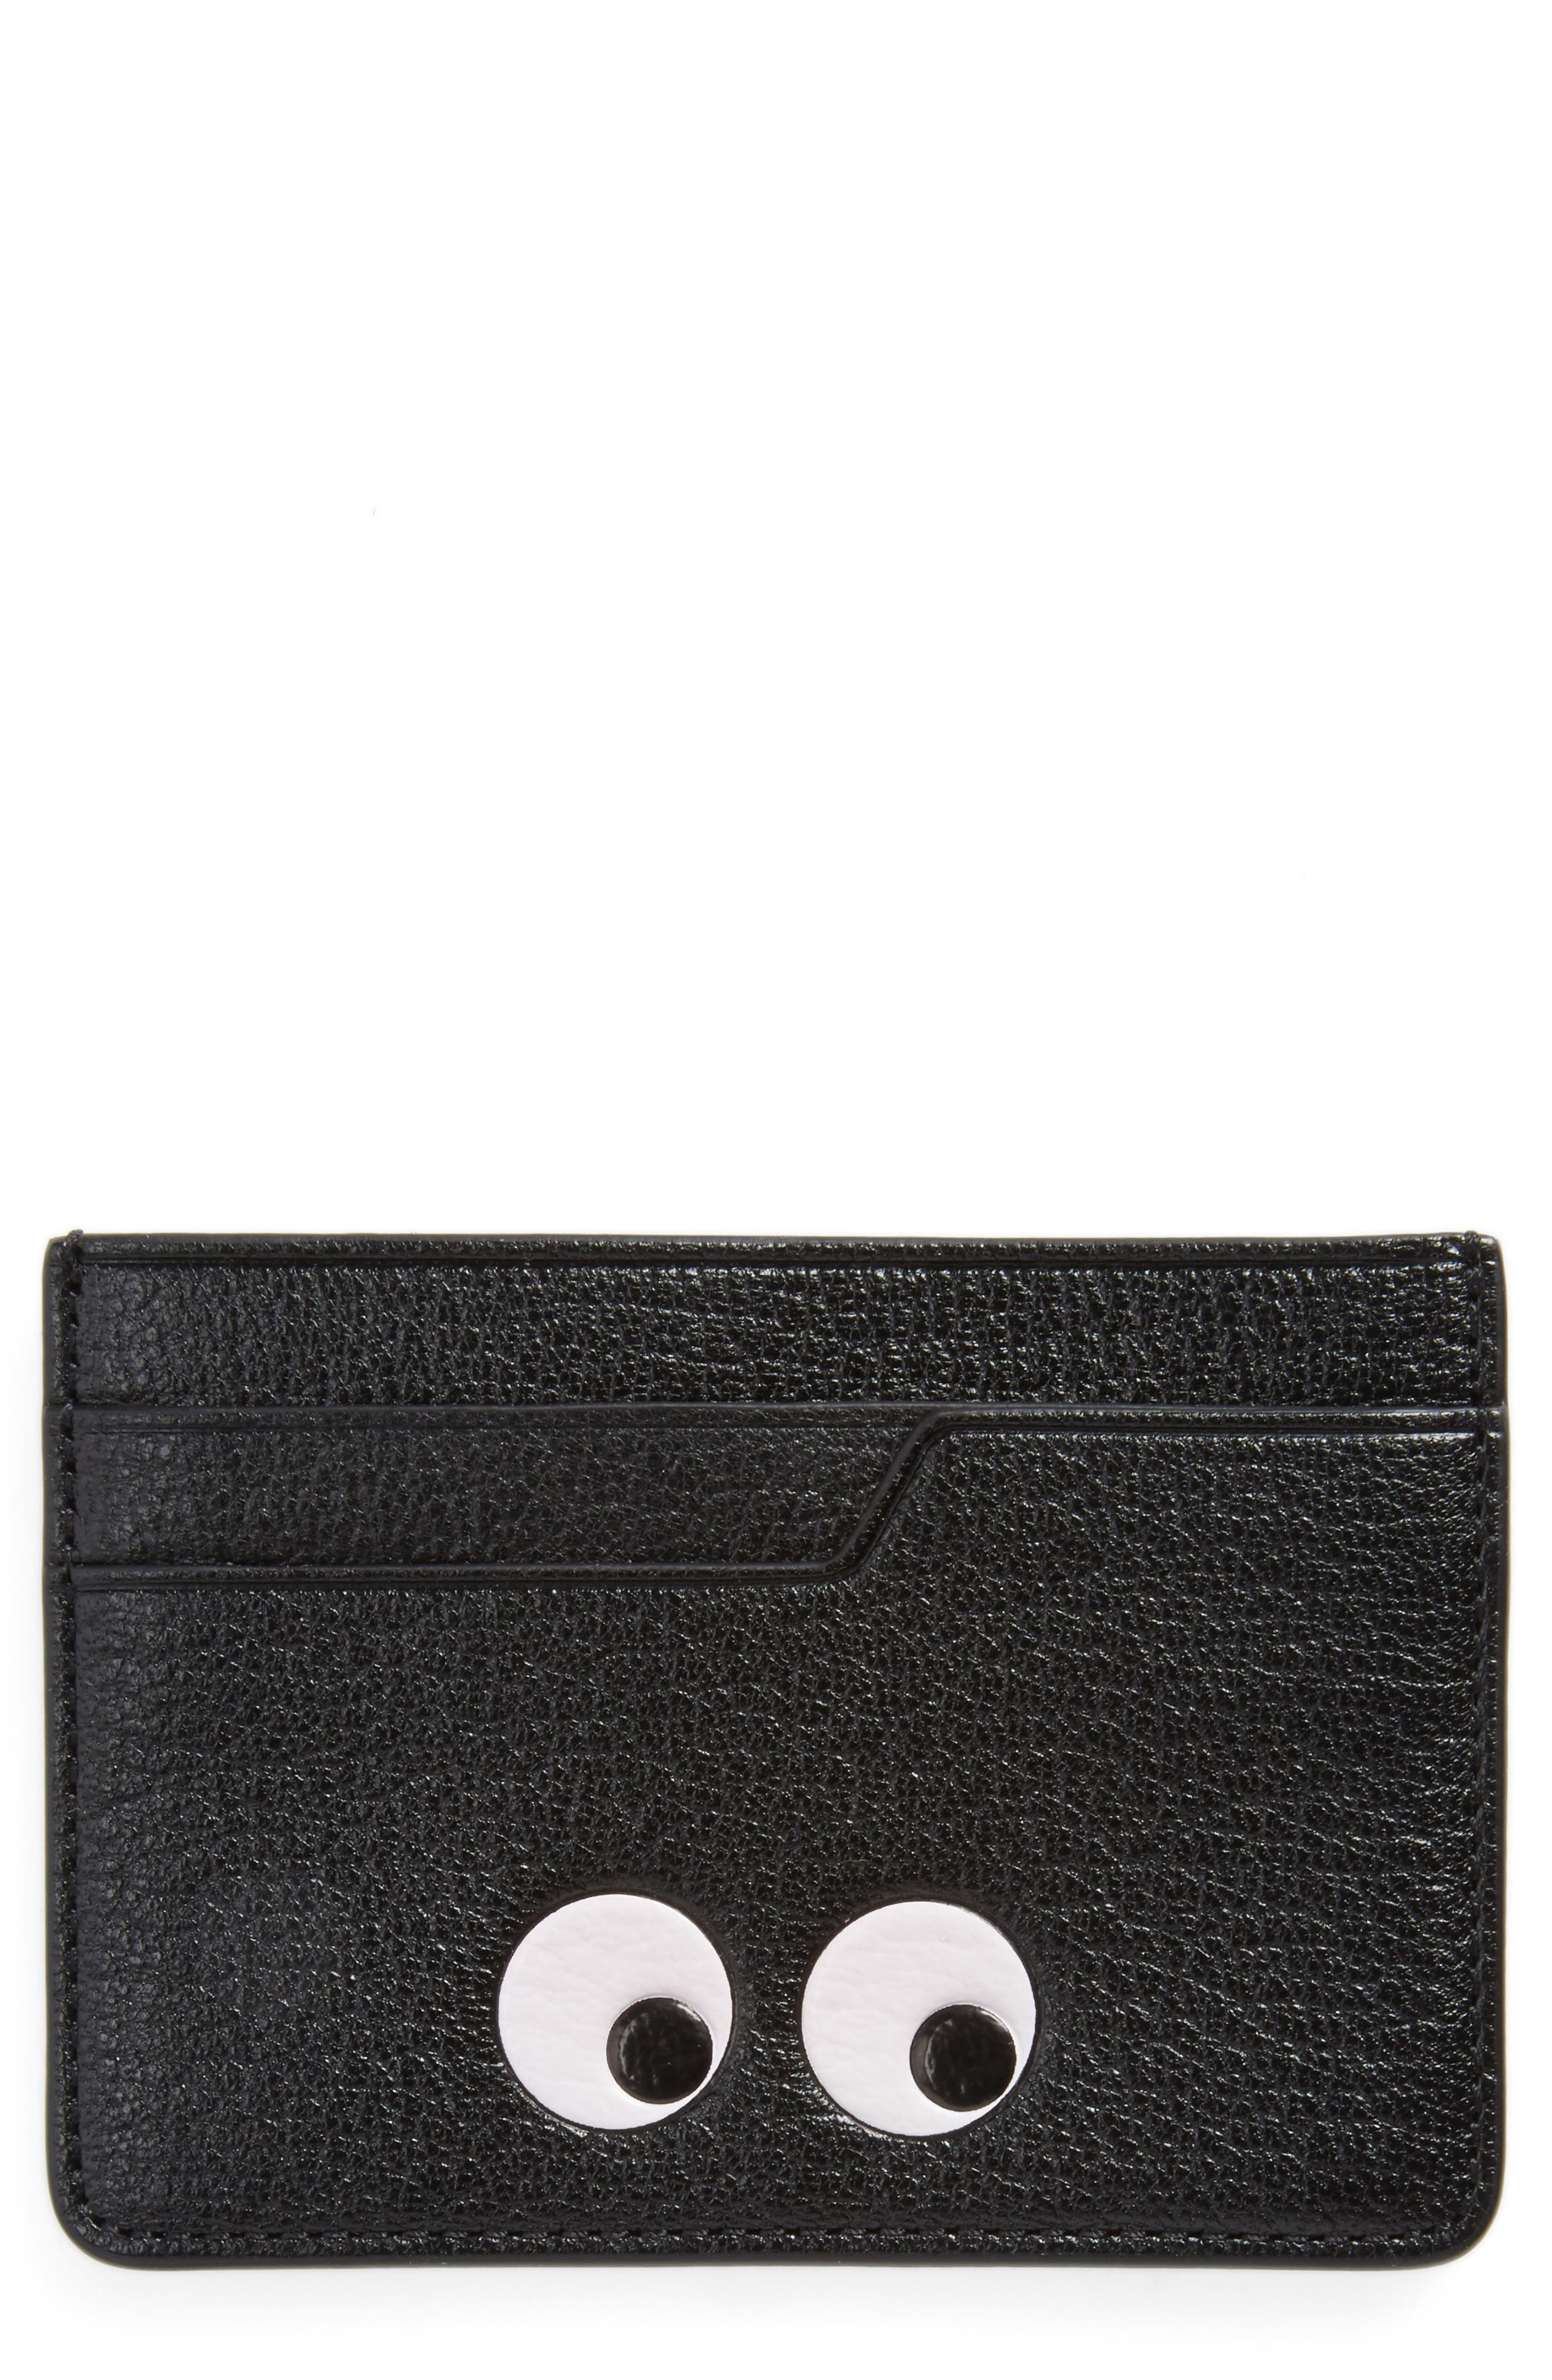 Eyes Leather Card Case,                             Main thumbnail 1, color,                             001